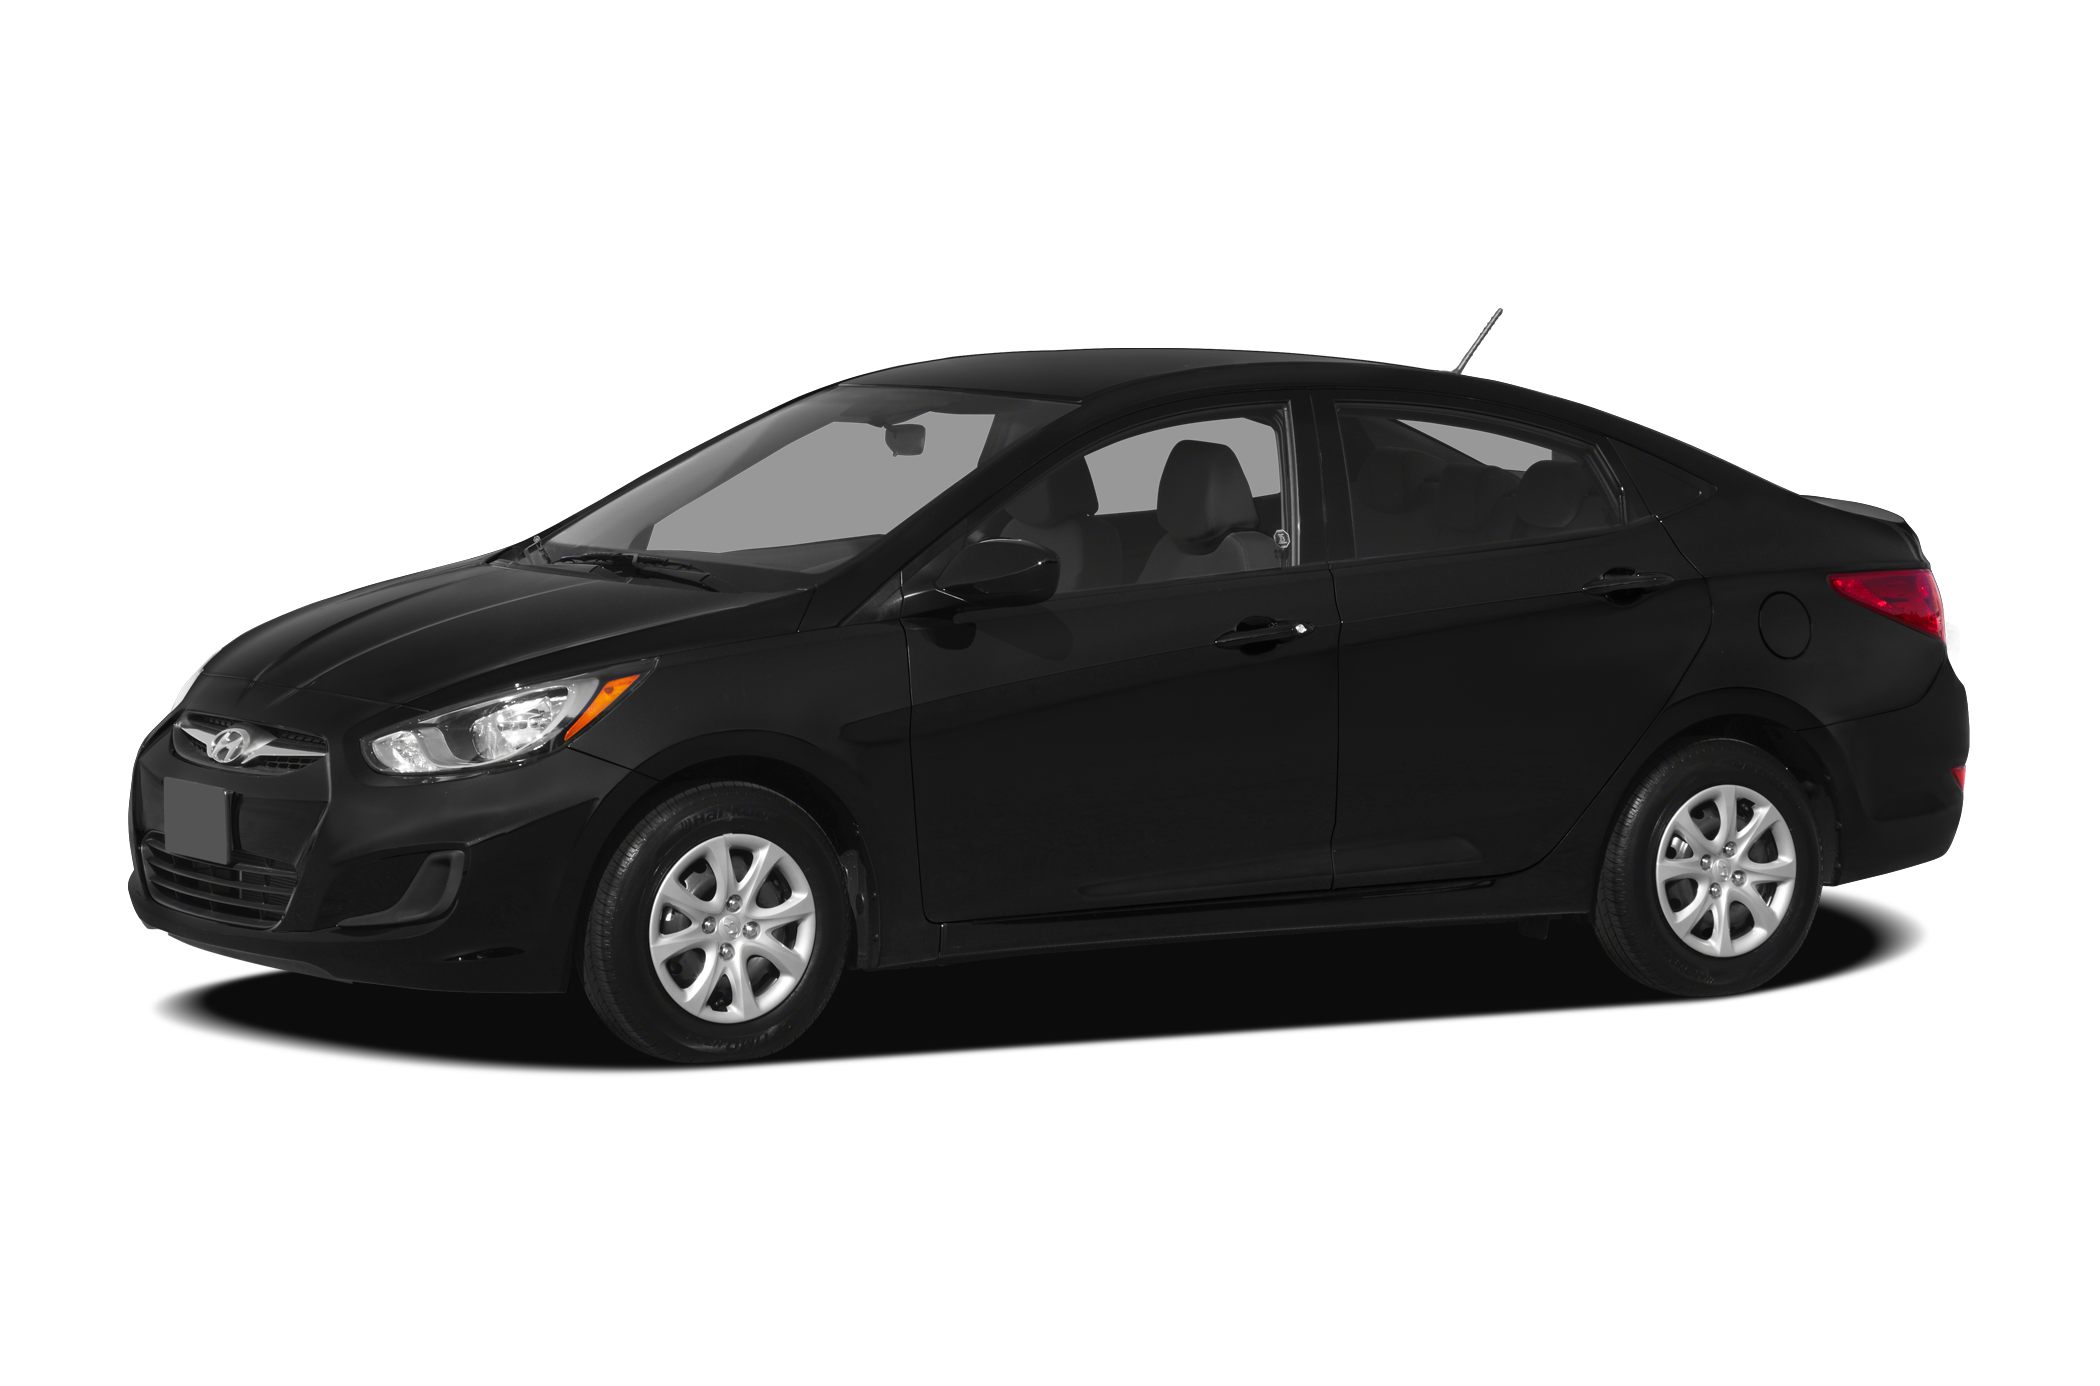 2012 Hyundai Accent GLS Sedan for sale in Boise for $11,981 with 28,697 miles.